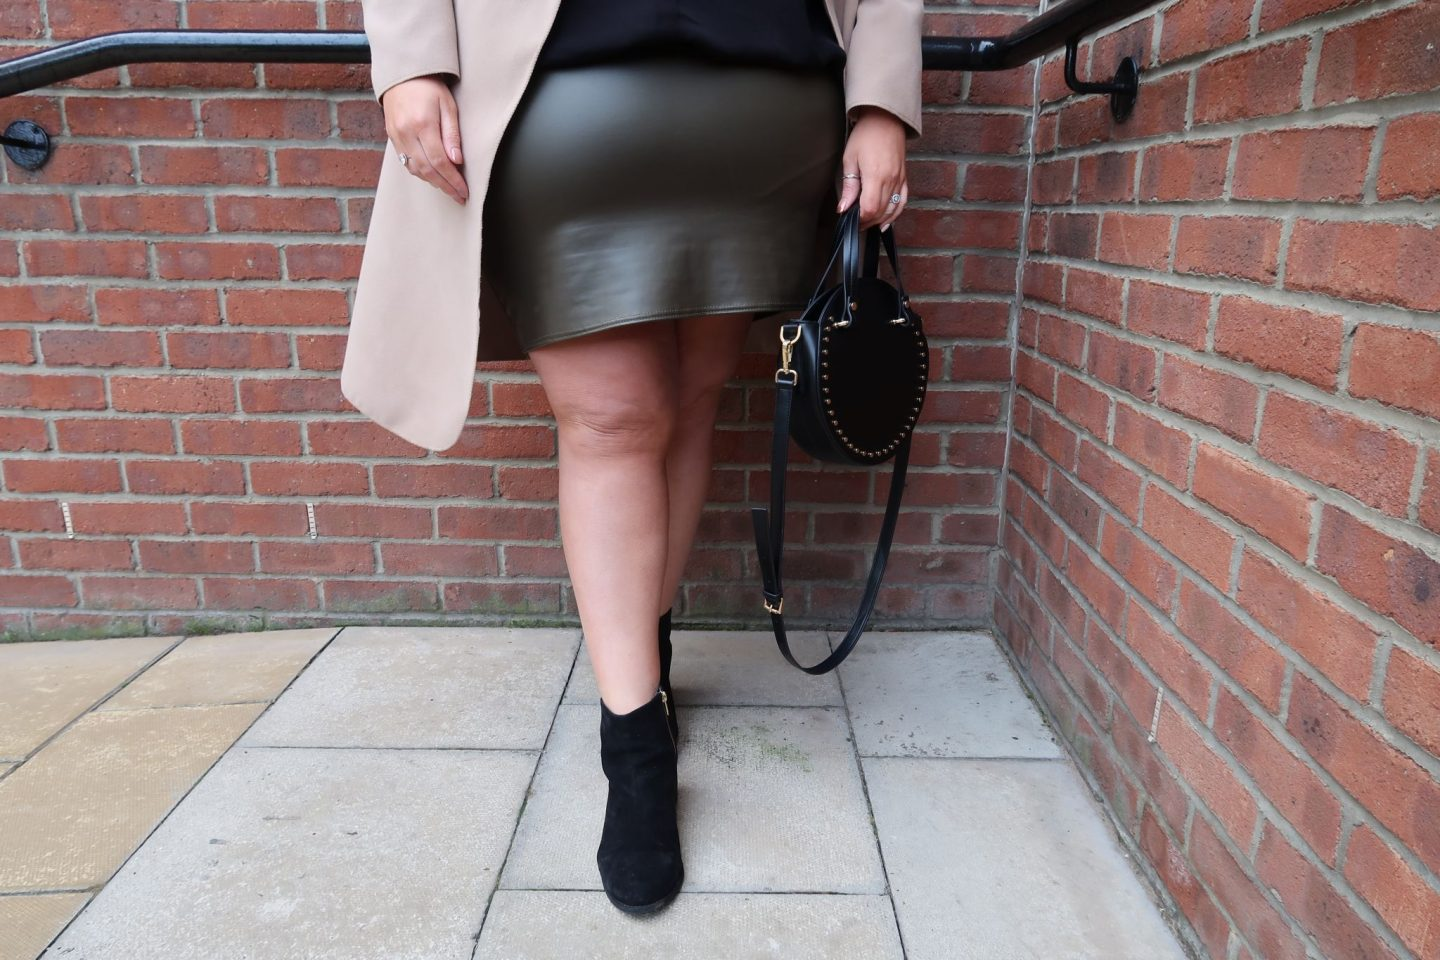 UK Plus Size Blogger WhatLauraLoves wearing River Island Boohoo and PrettyLittleThing